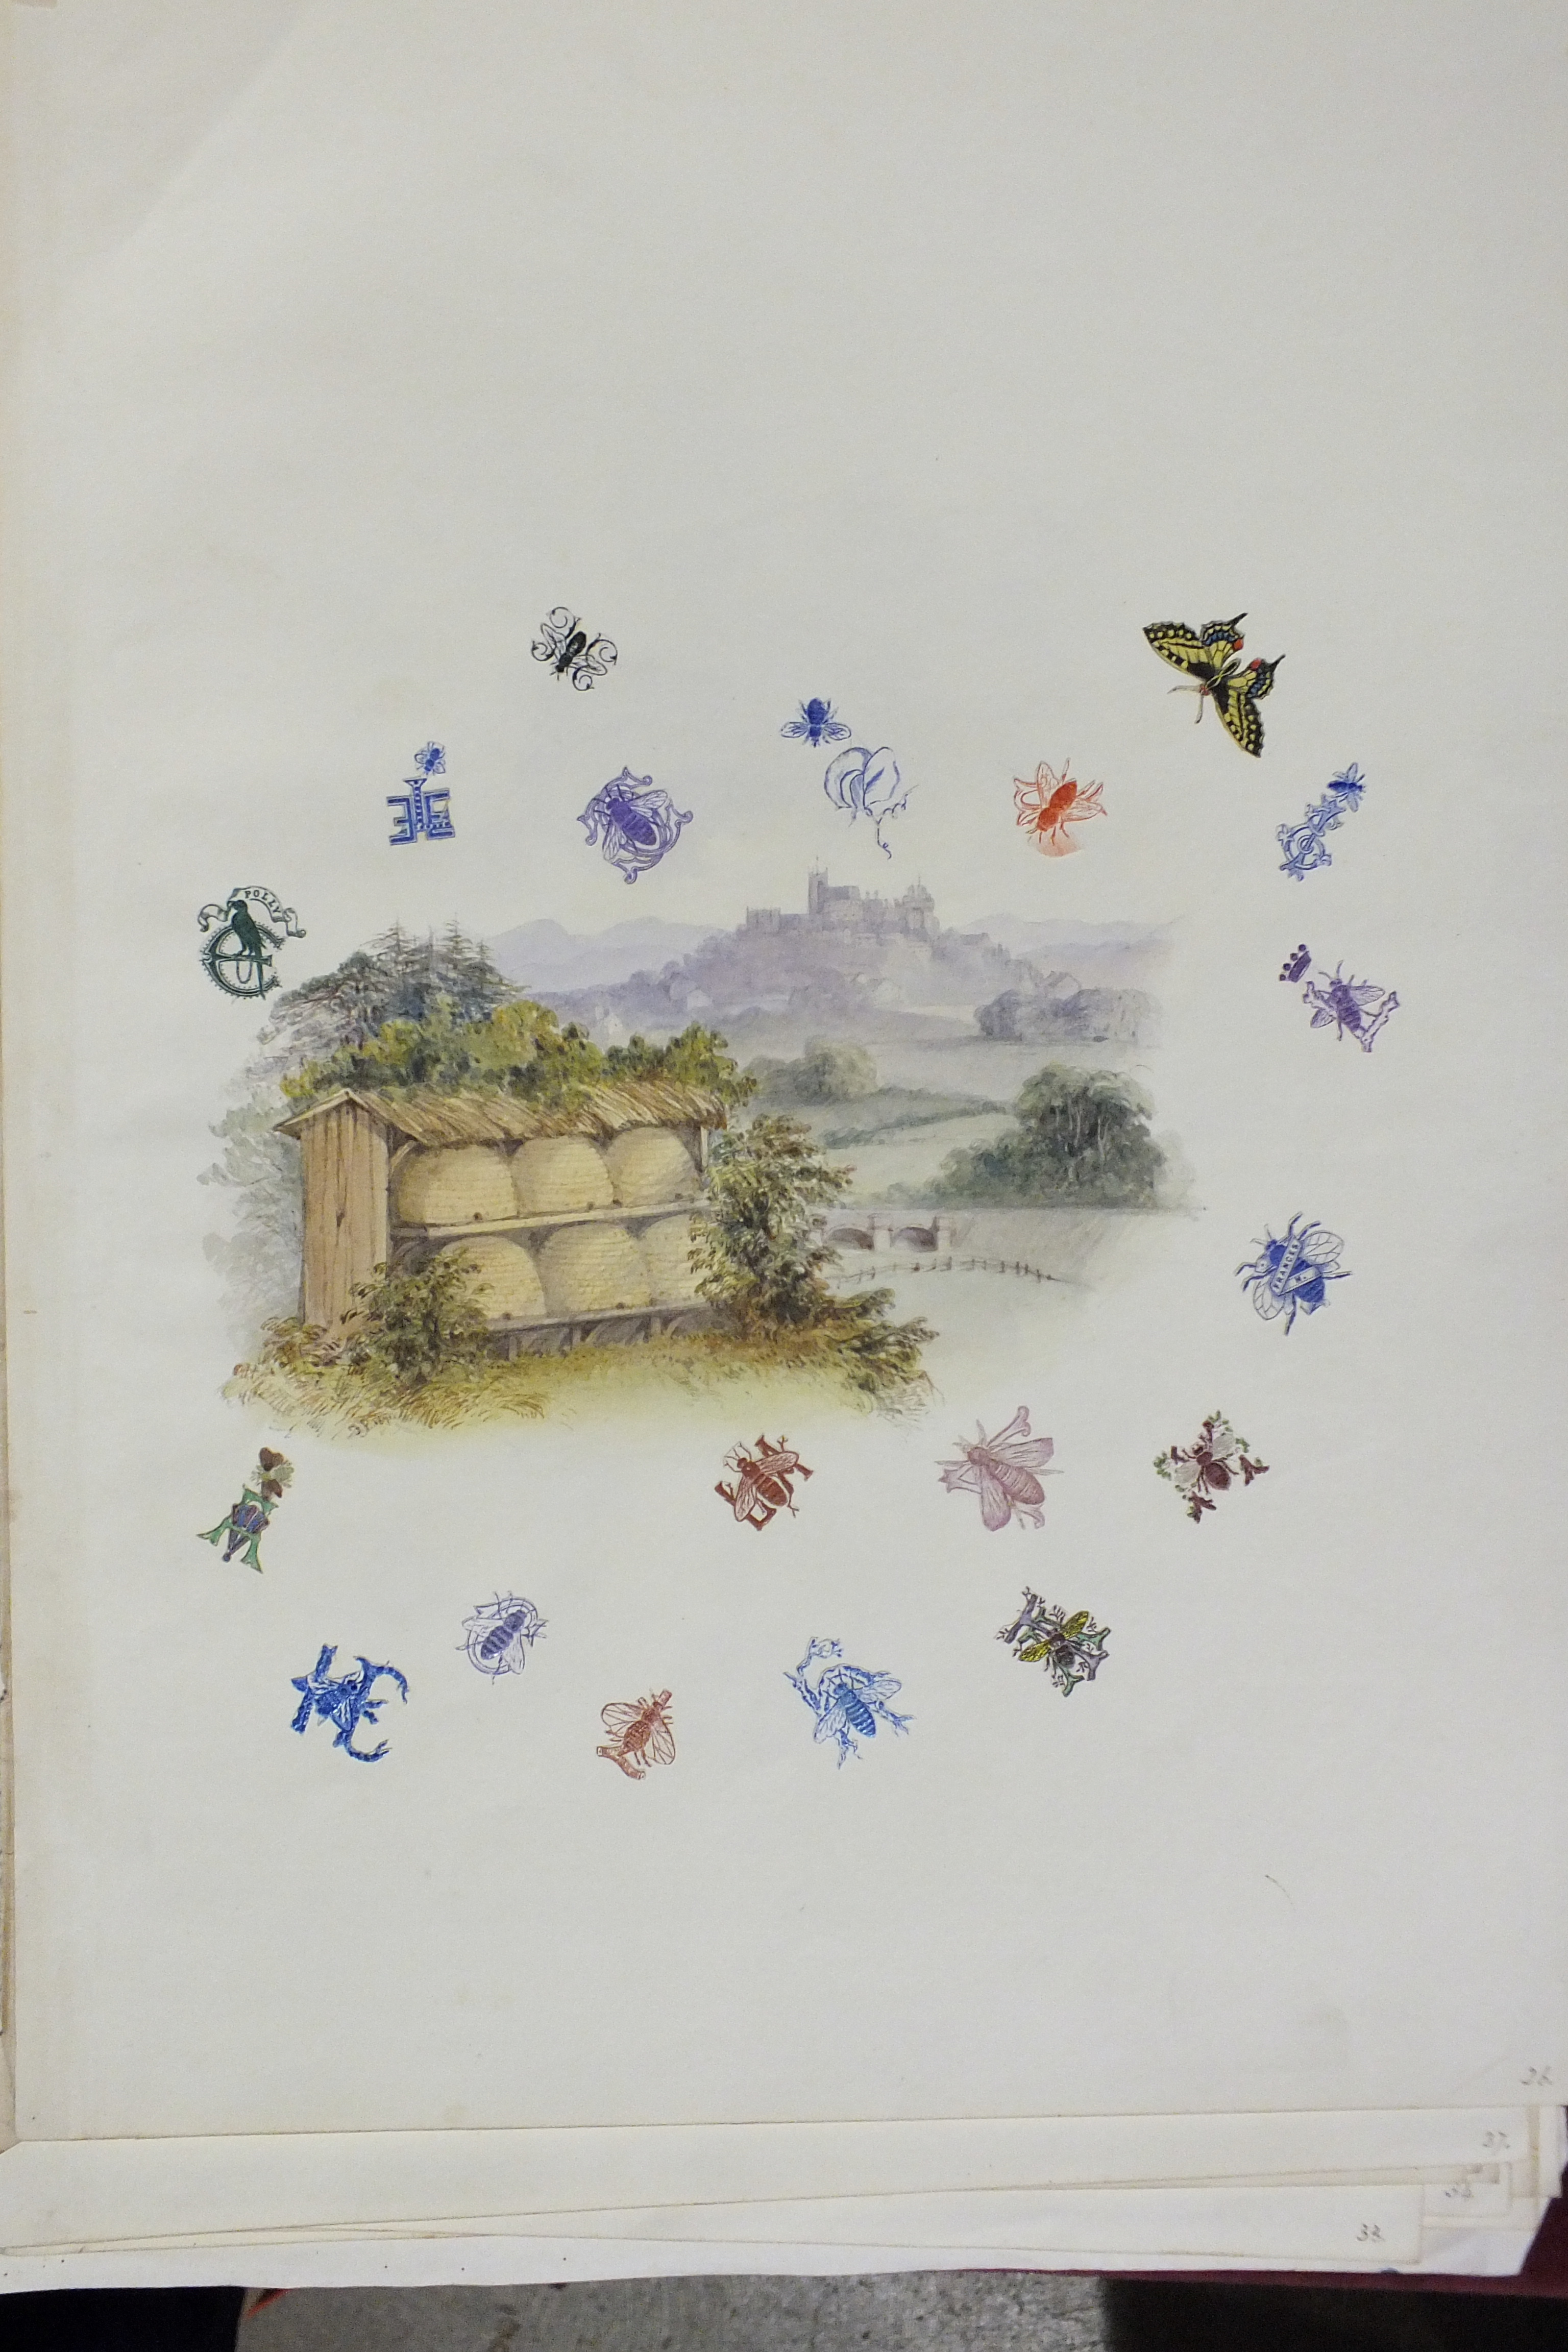 Lot 100 - A Victorian collection of embossed paper coats of arms, crests and monograms cut from envelopes